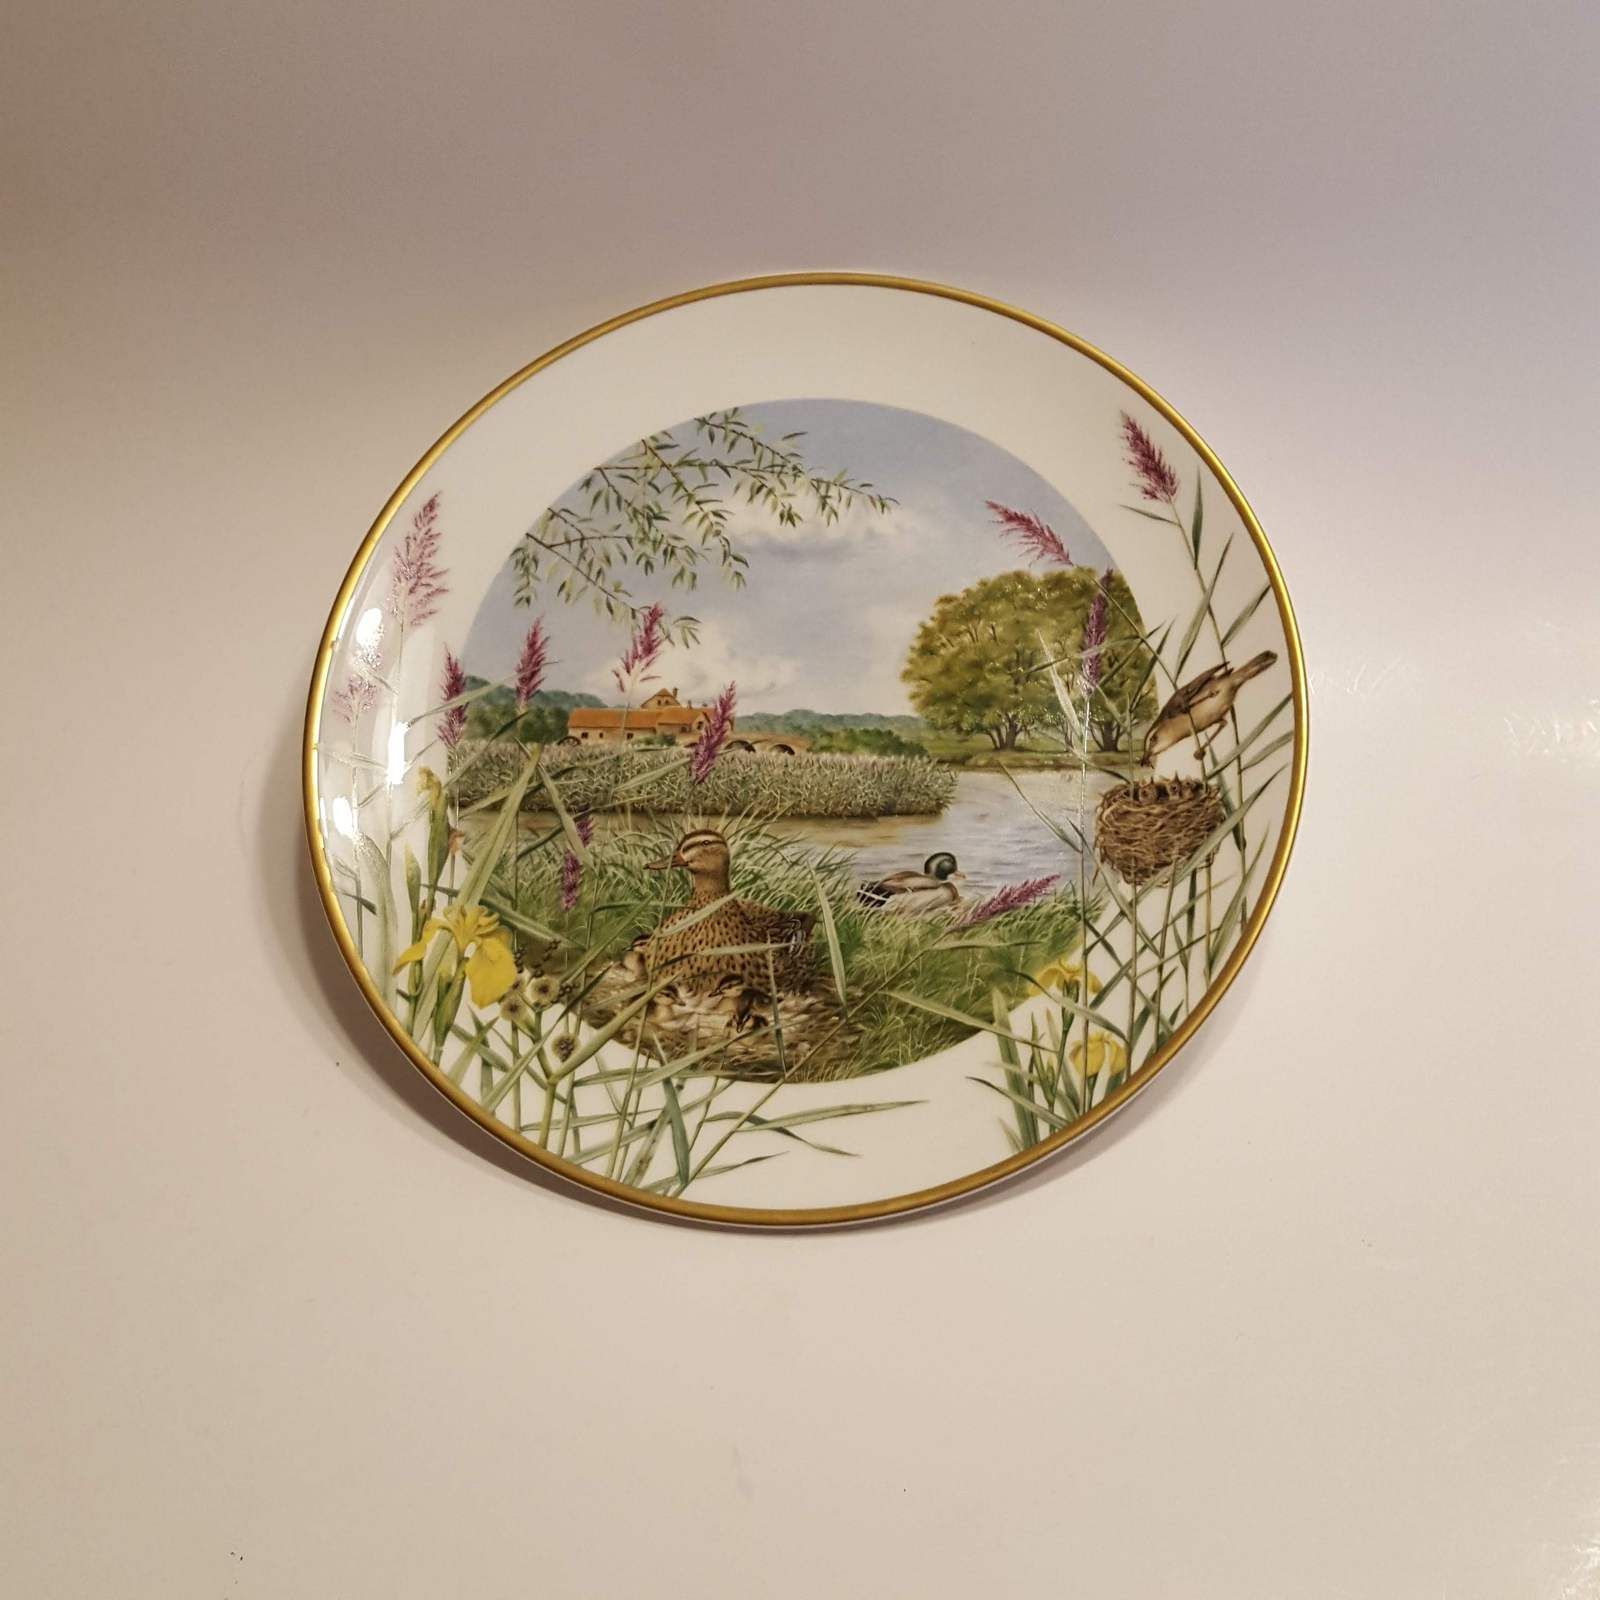 Primary image for Franklin Porcelain Plate July beside the river @1979 by Peter Banett